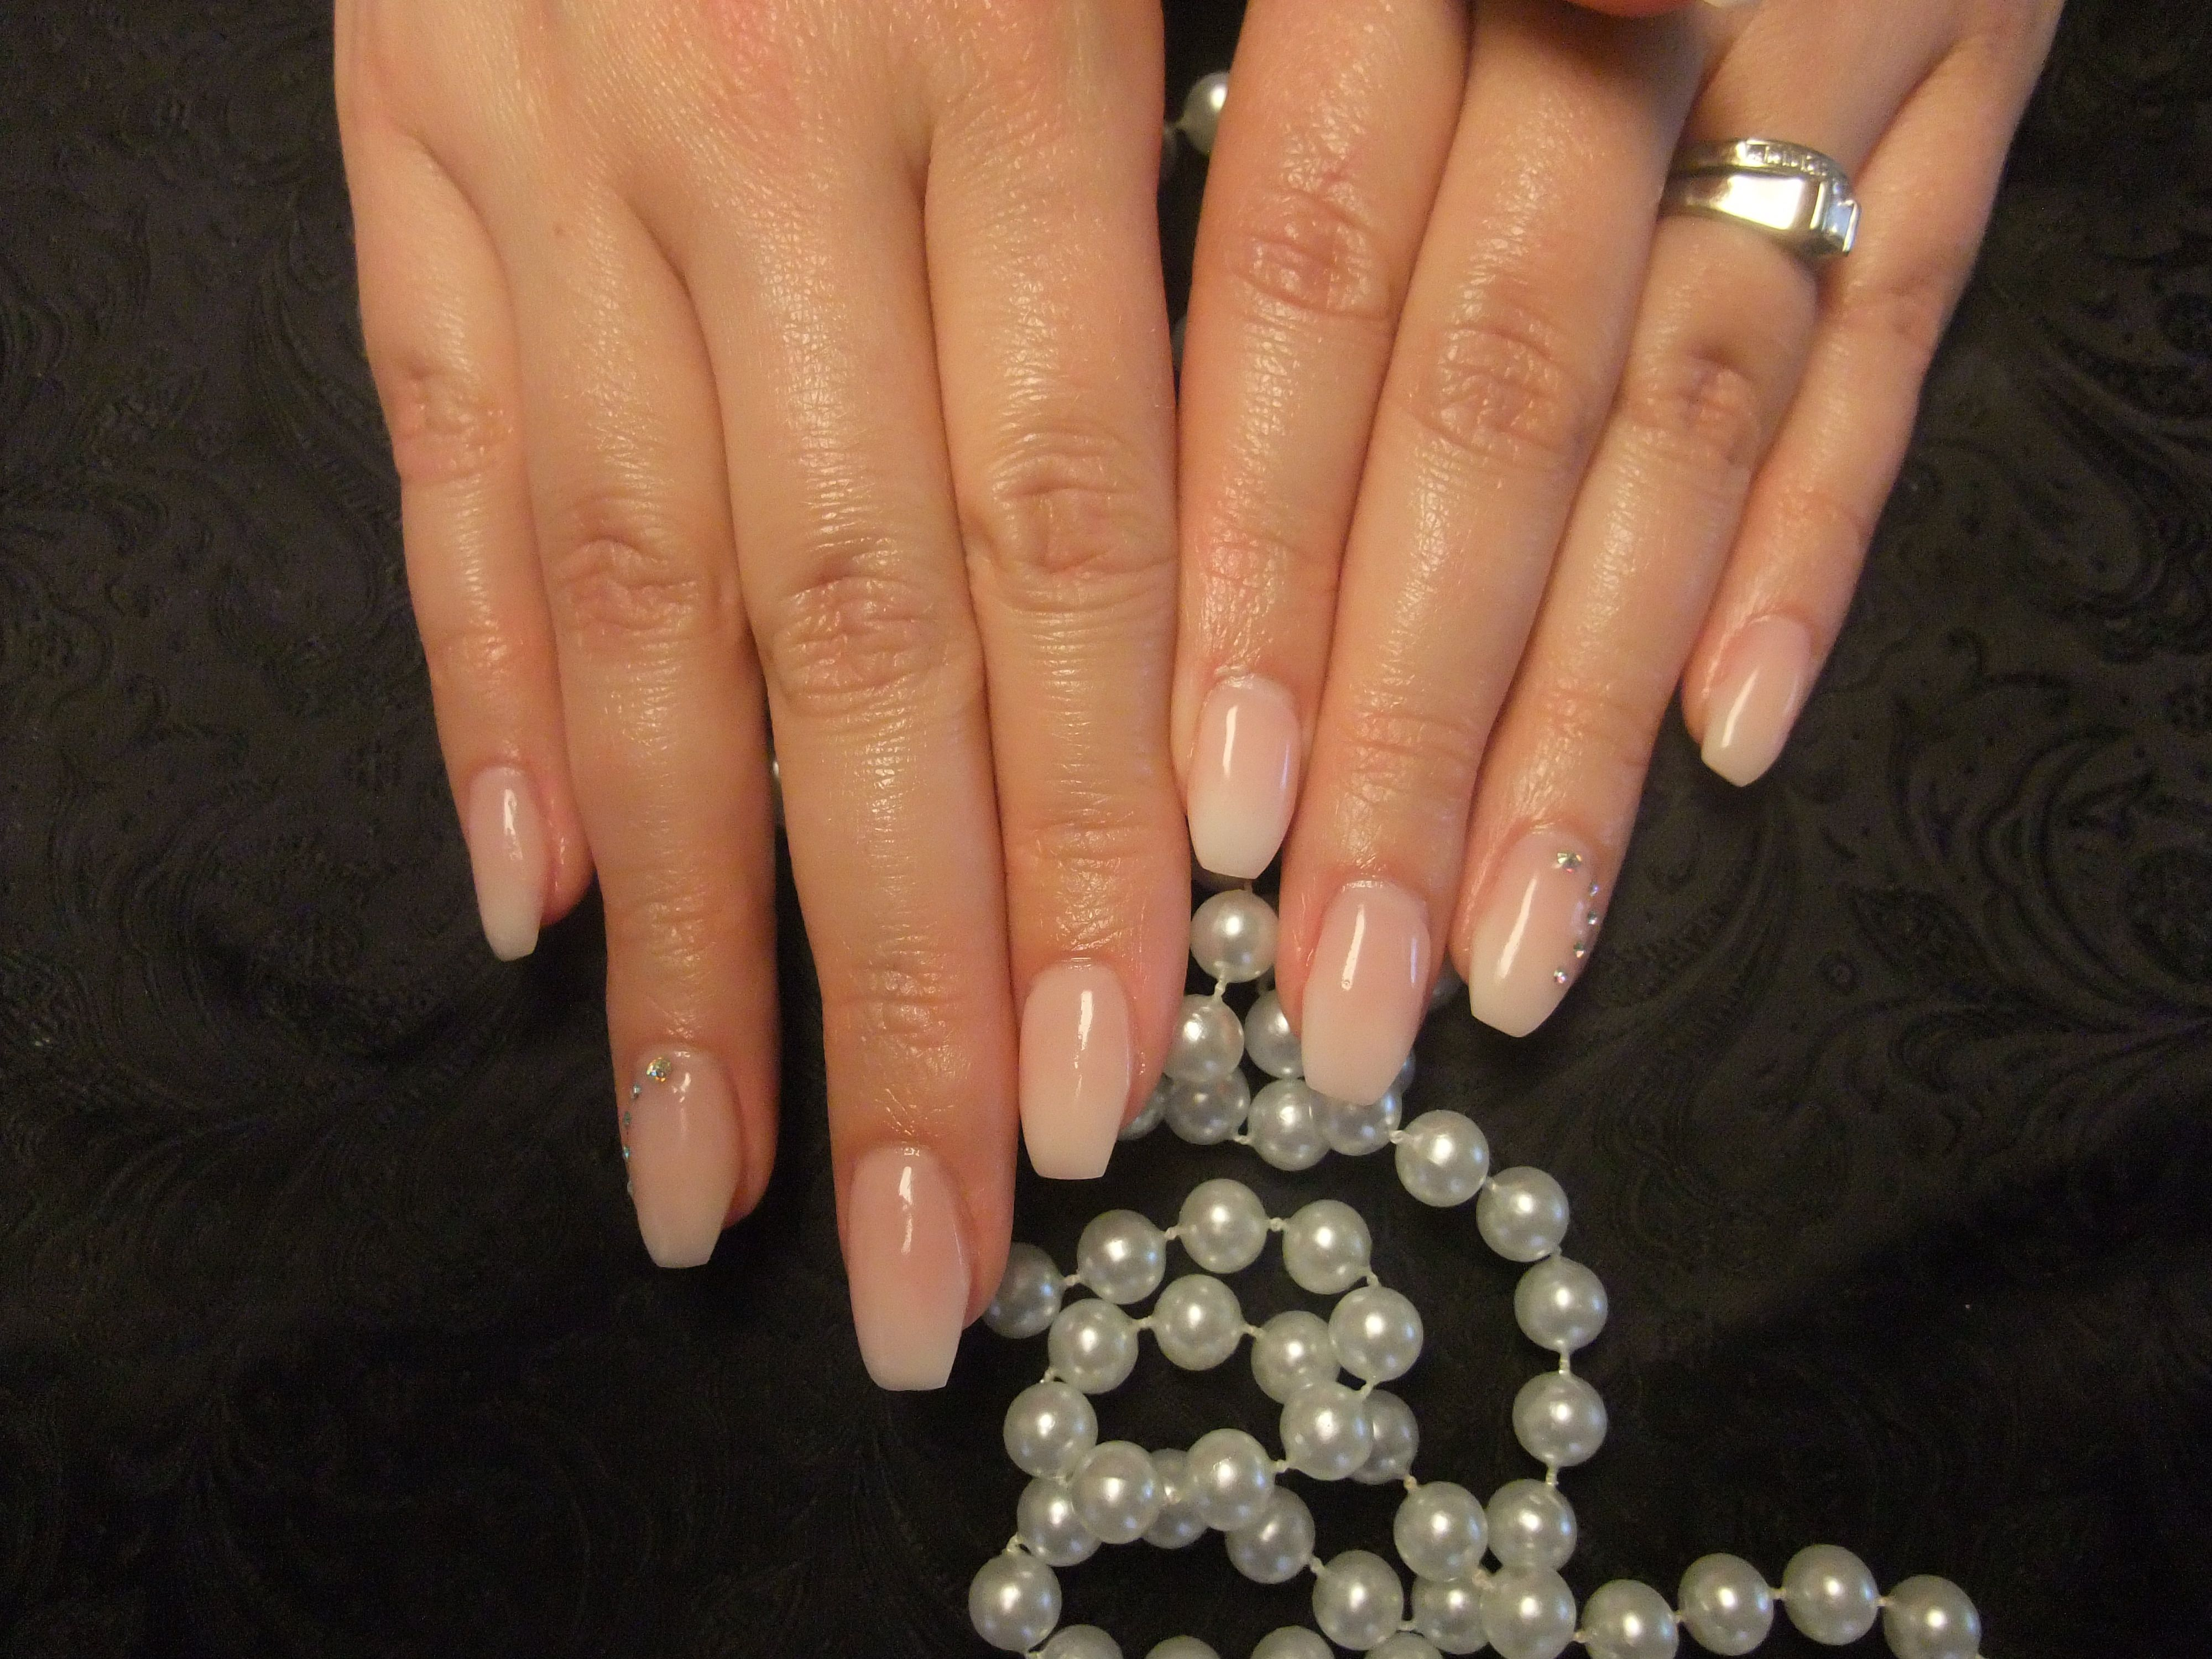 Gel Nails, Babyboomer nails | The Nail Fairy | Pinterest